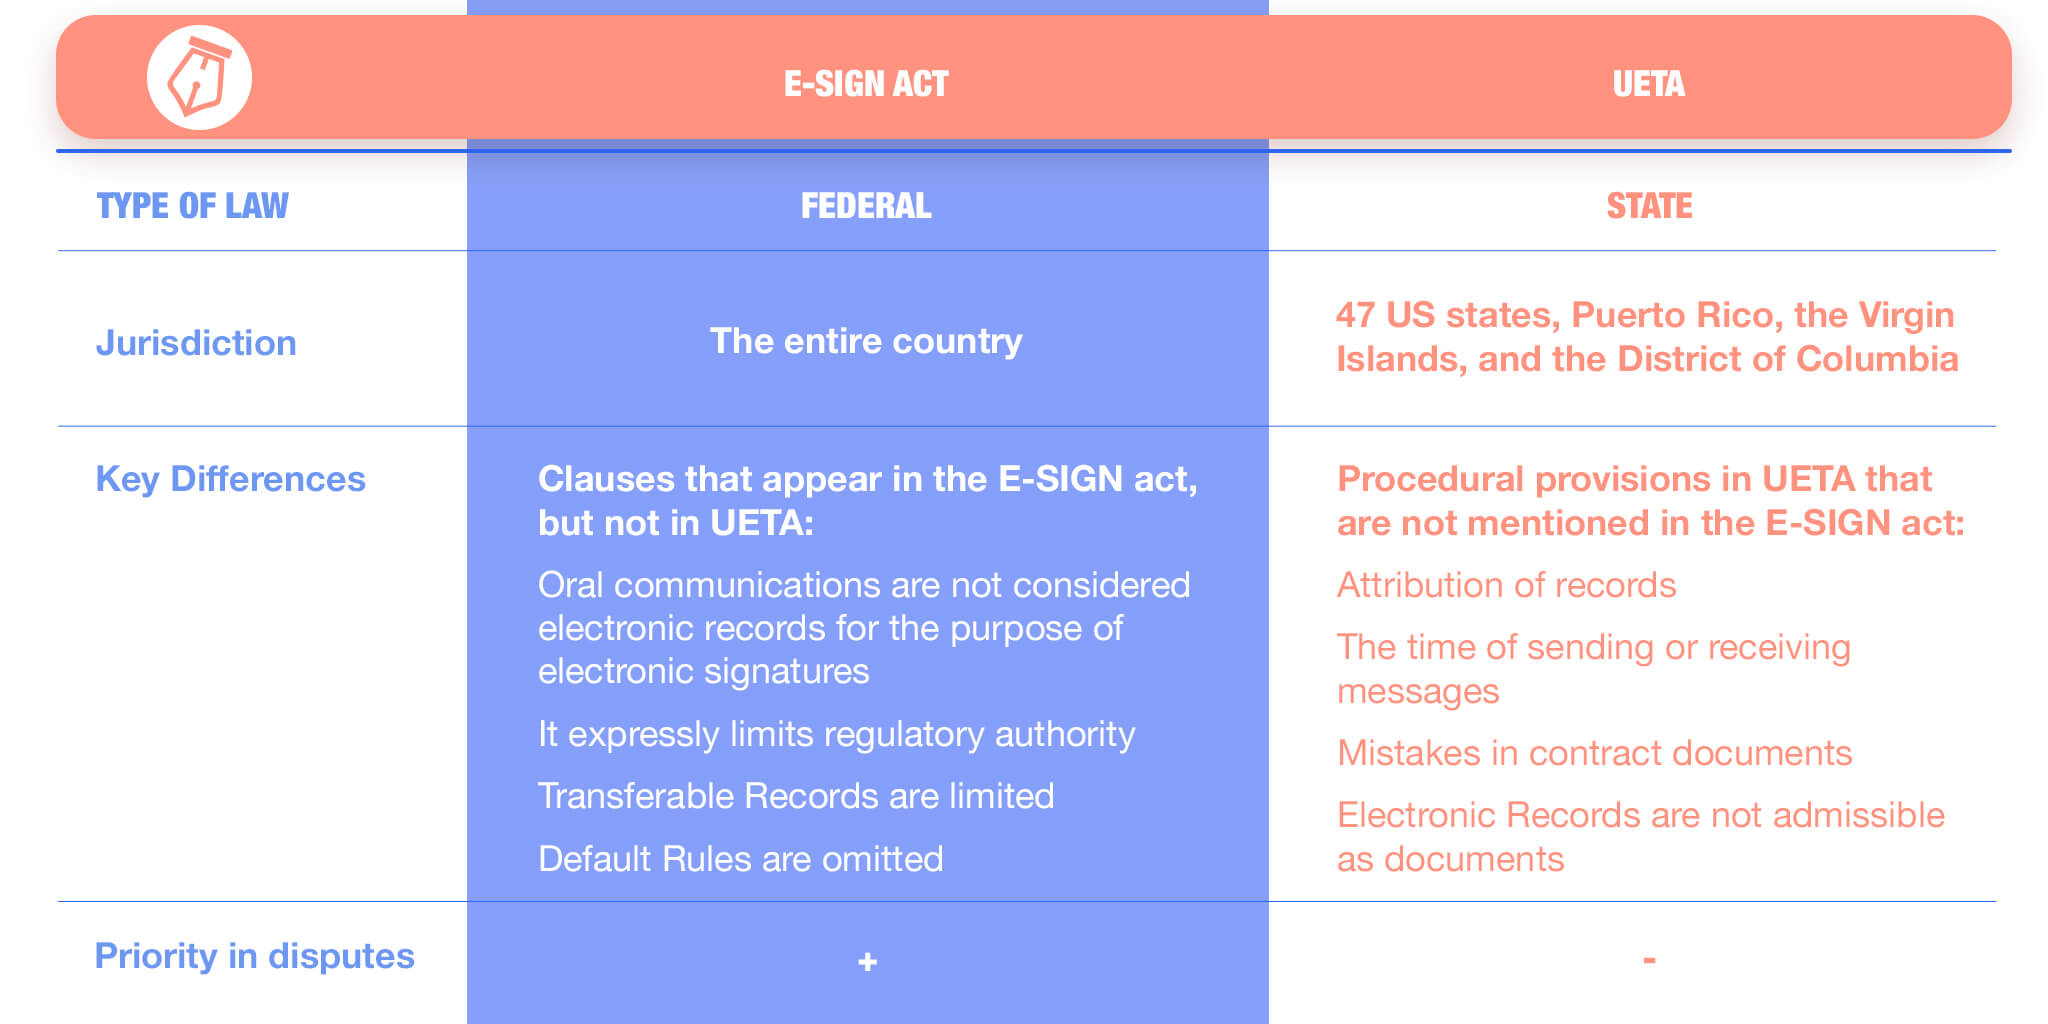 Comparative table of the E-SIGN act and UETA